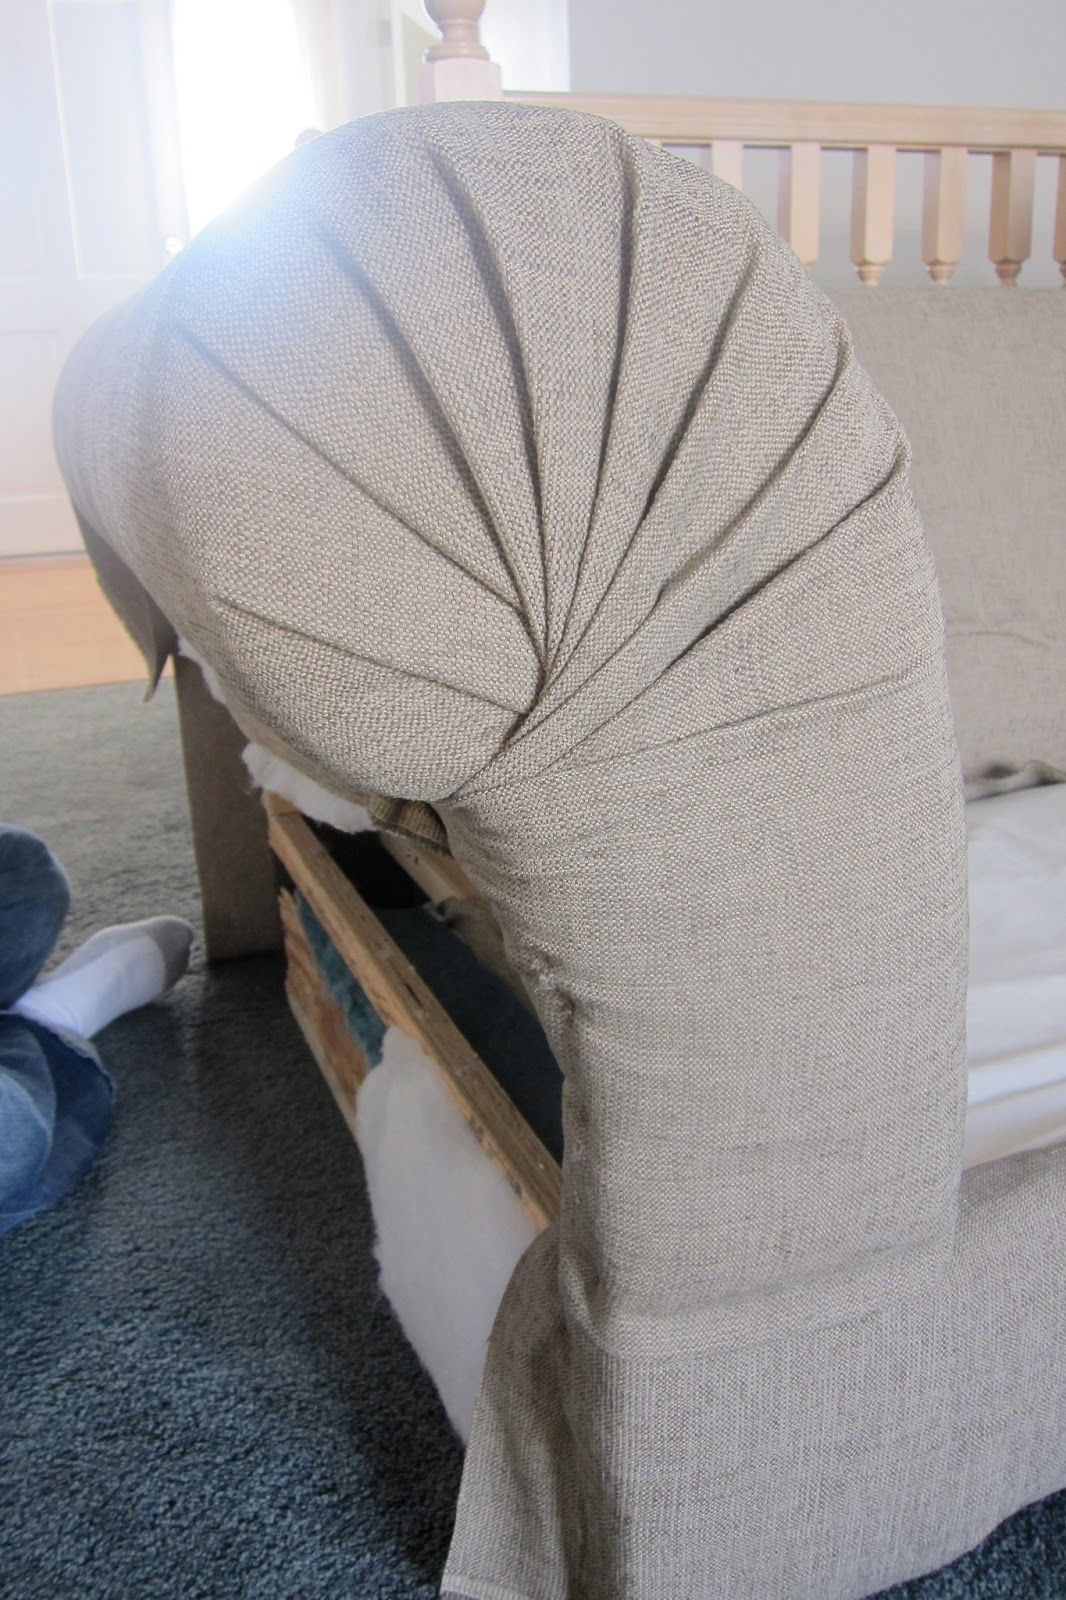 DIY Reupholstering A Couch.. Very Detailed Instructions, AMAZING Result!!  Totally Gonna